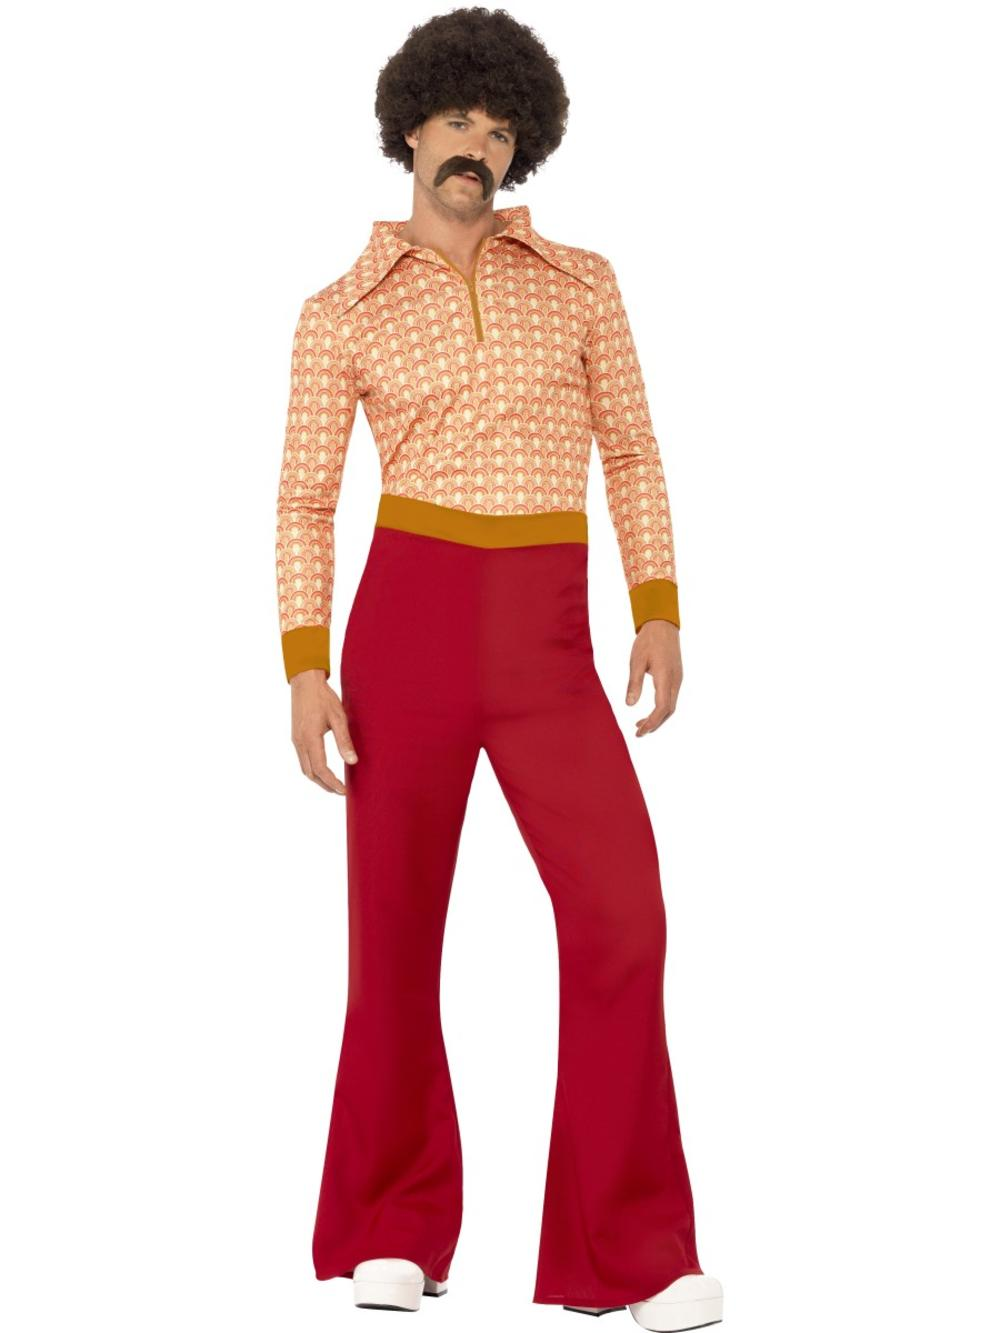 Authentic 70s Guy Mens Fancy Dress Peace Hippie Hippy 1970s Adult Costume Outfit